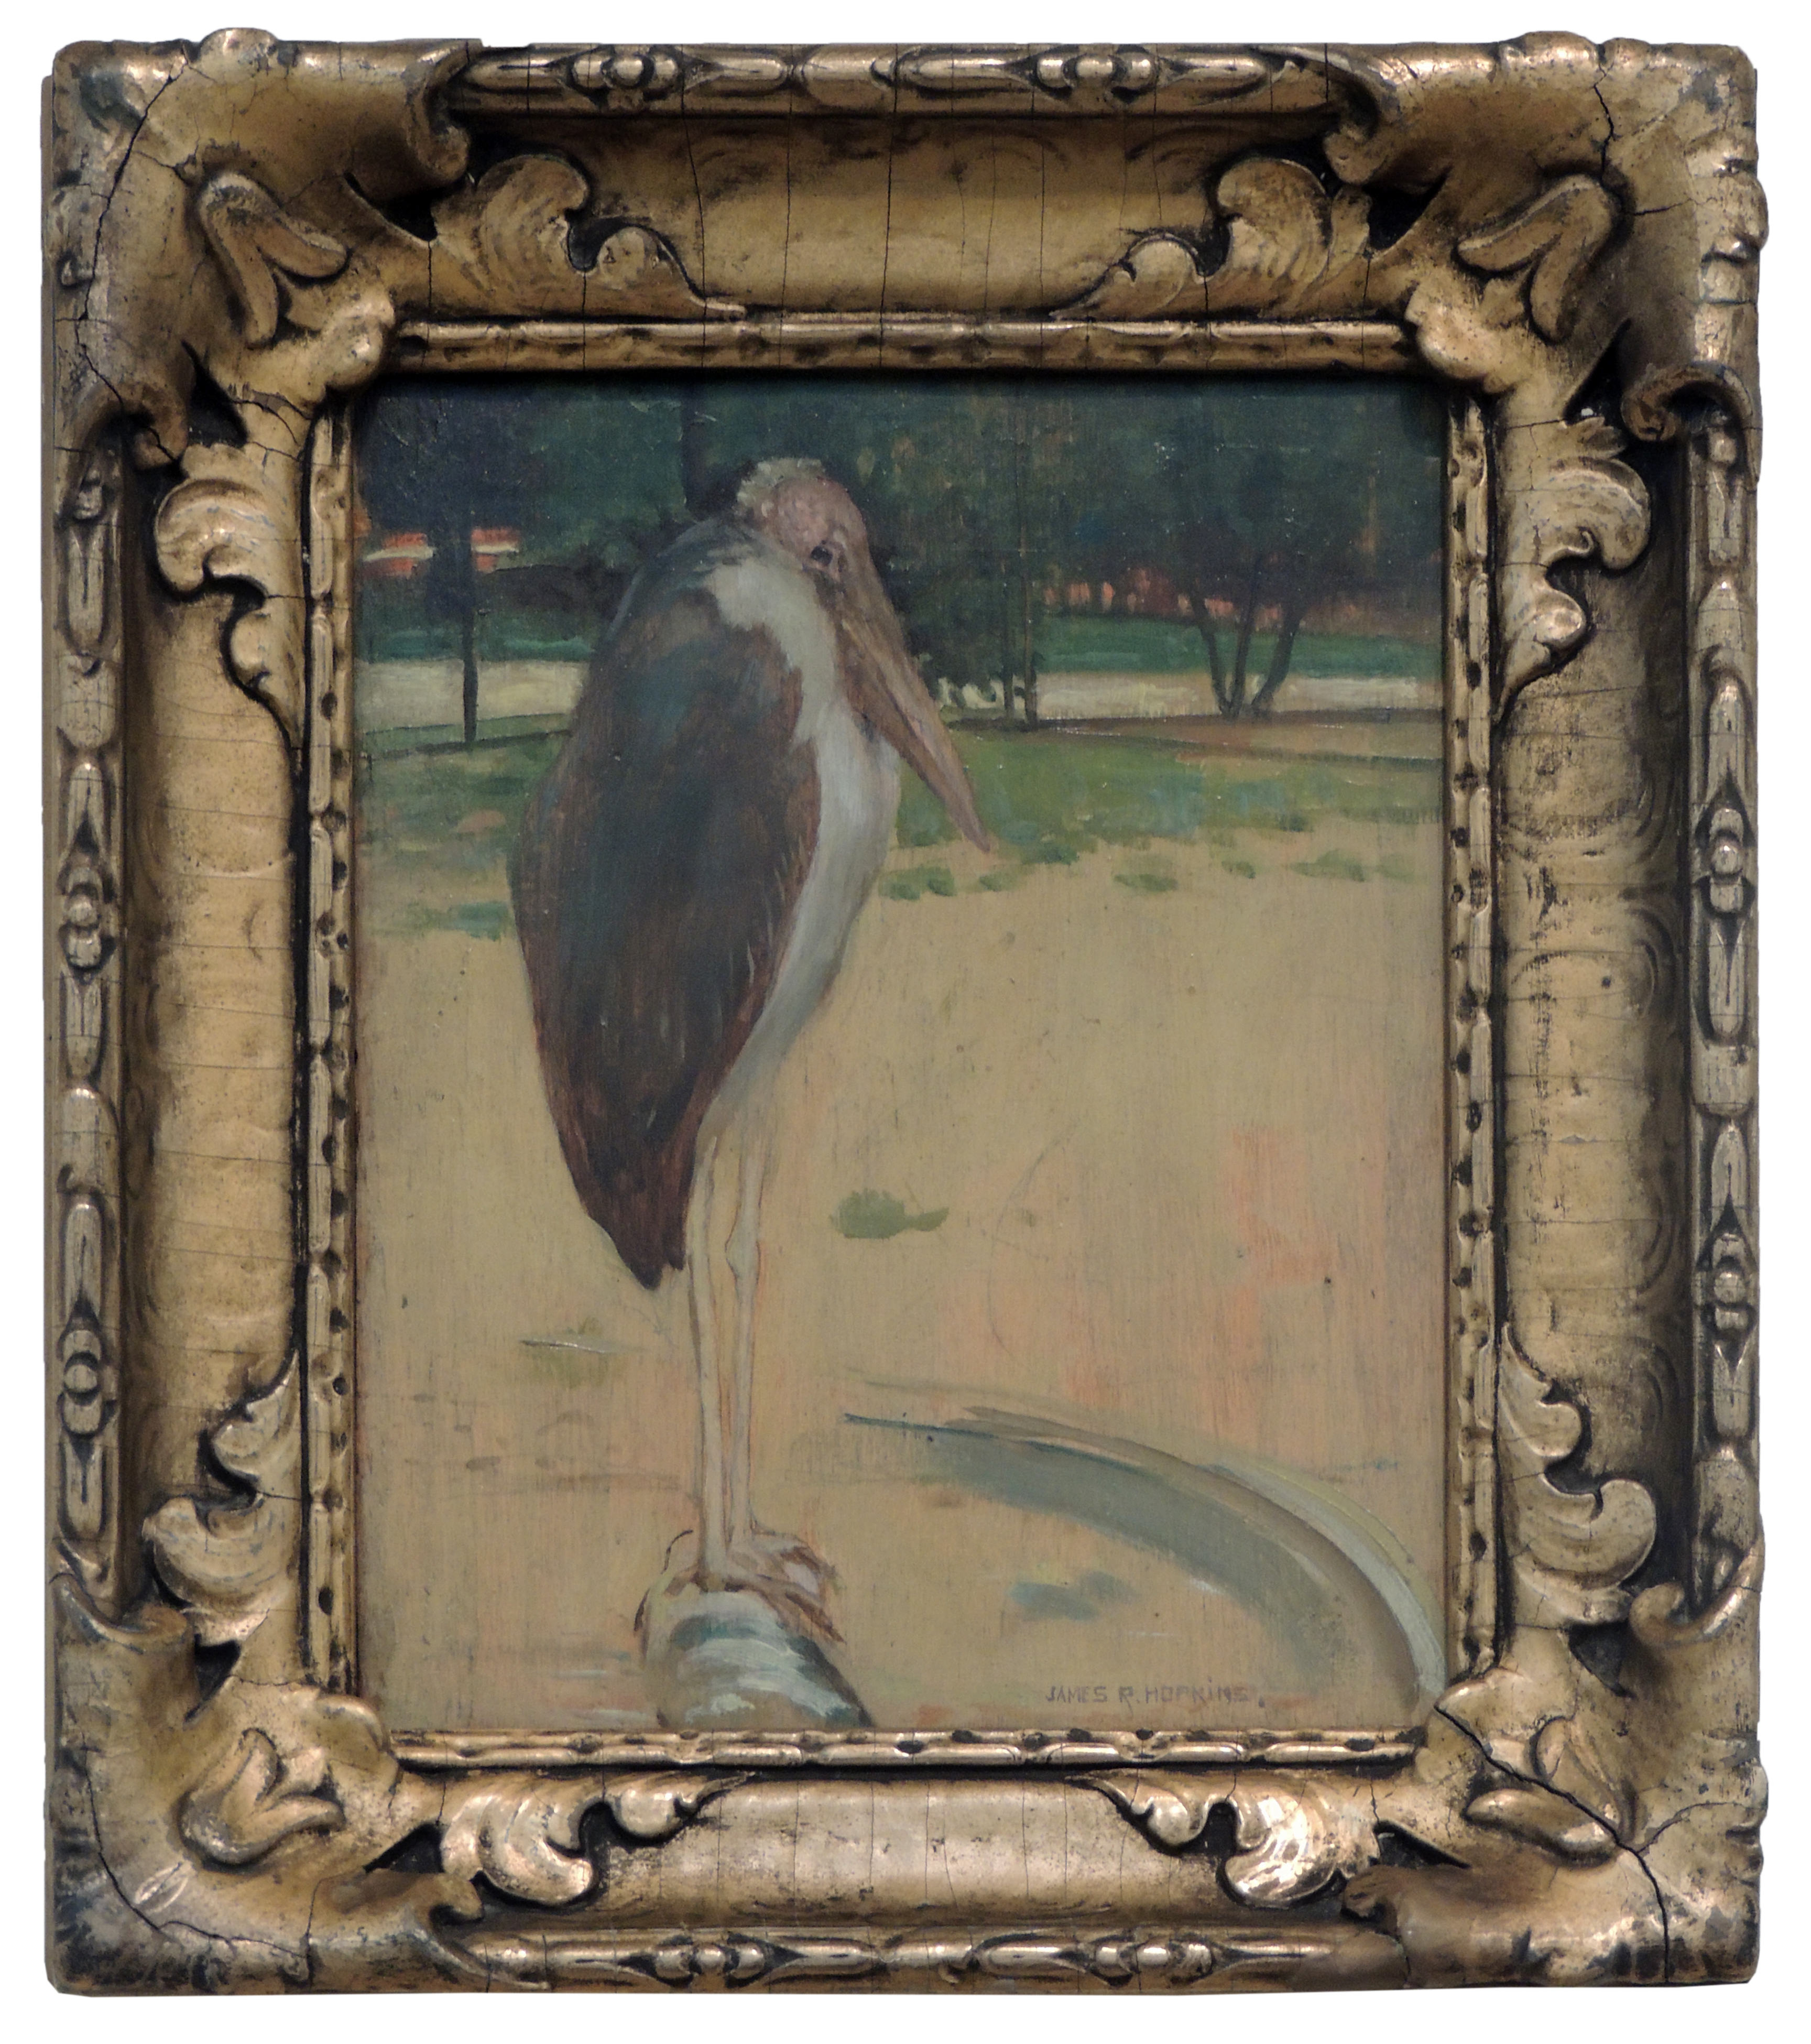 James R. Hopkins | THE SILLY BIRD | oil on board | 9-1/2 x 7-1/2"